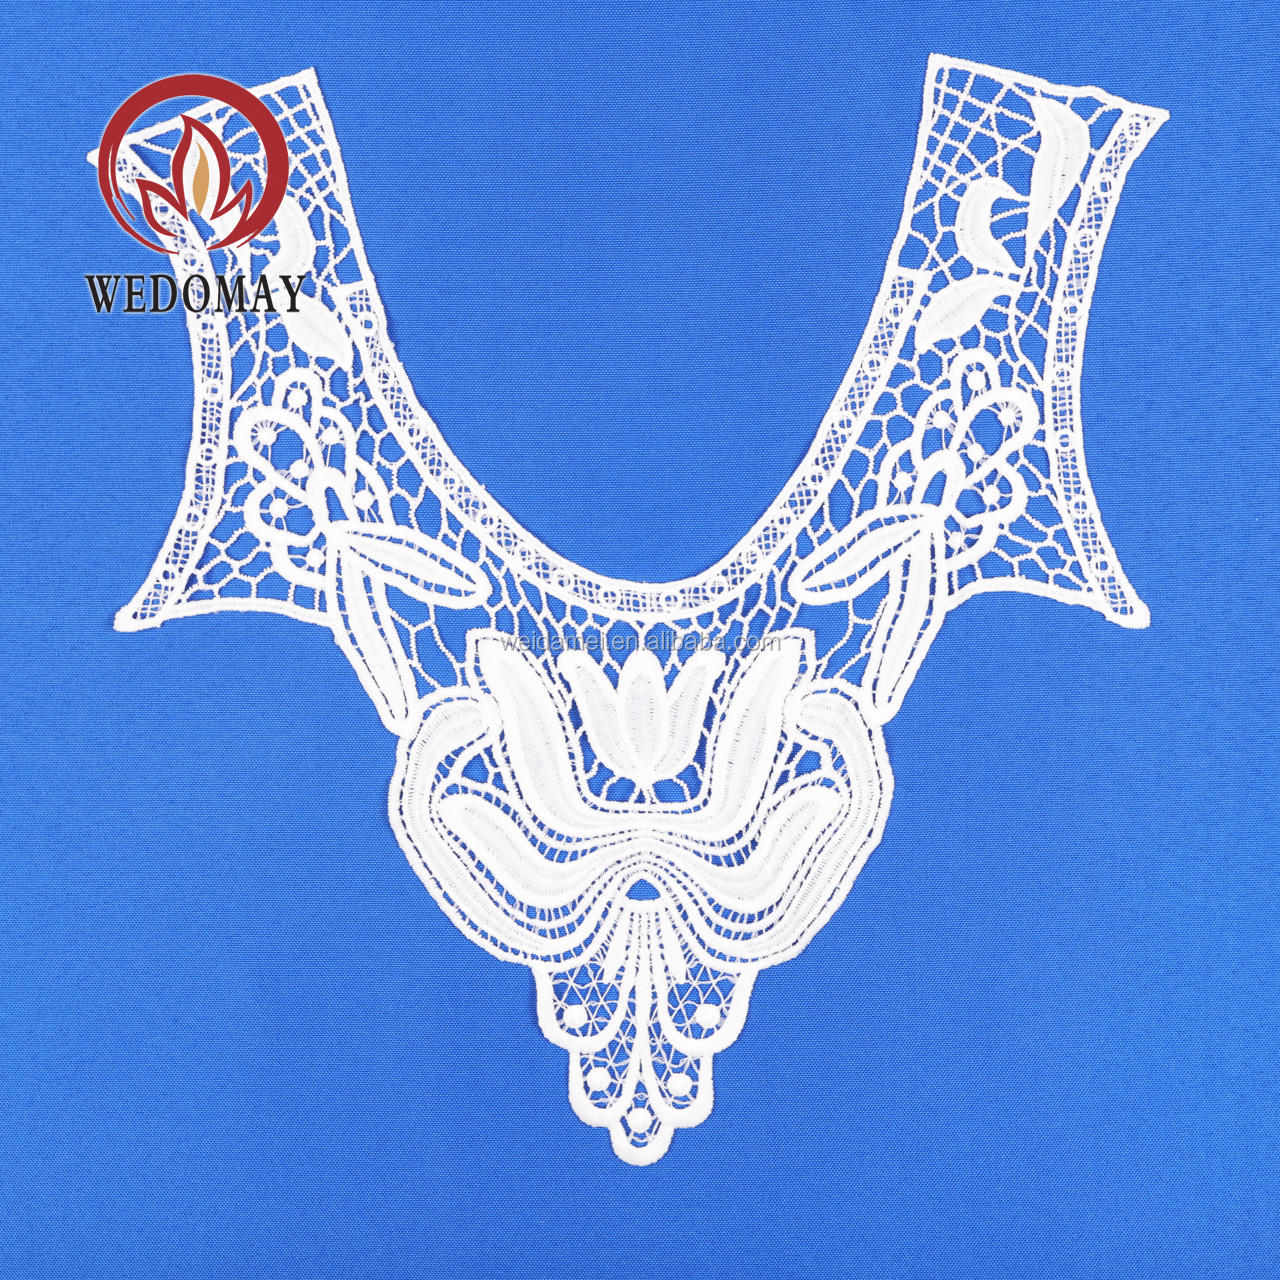 Bridal embroidery applique 35 cm X 35 cm embroidery lace embroidery for dress